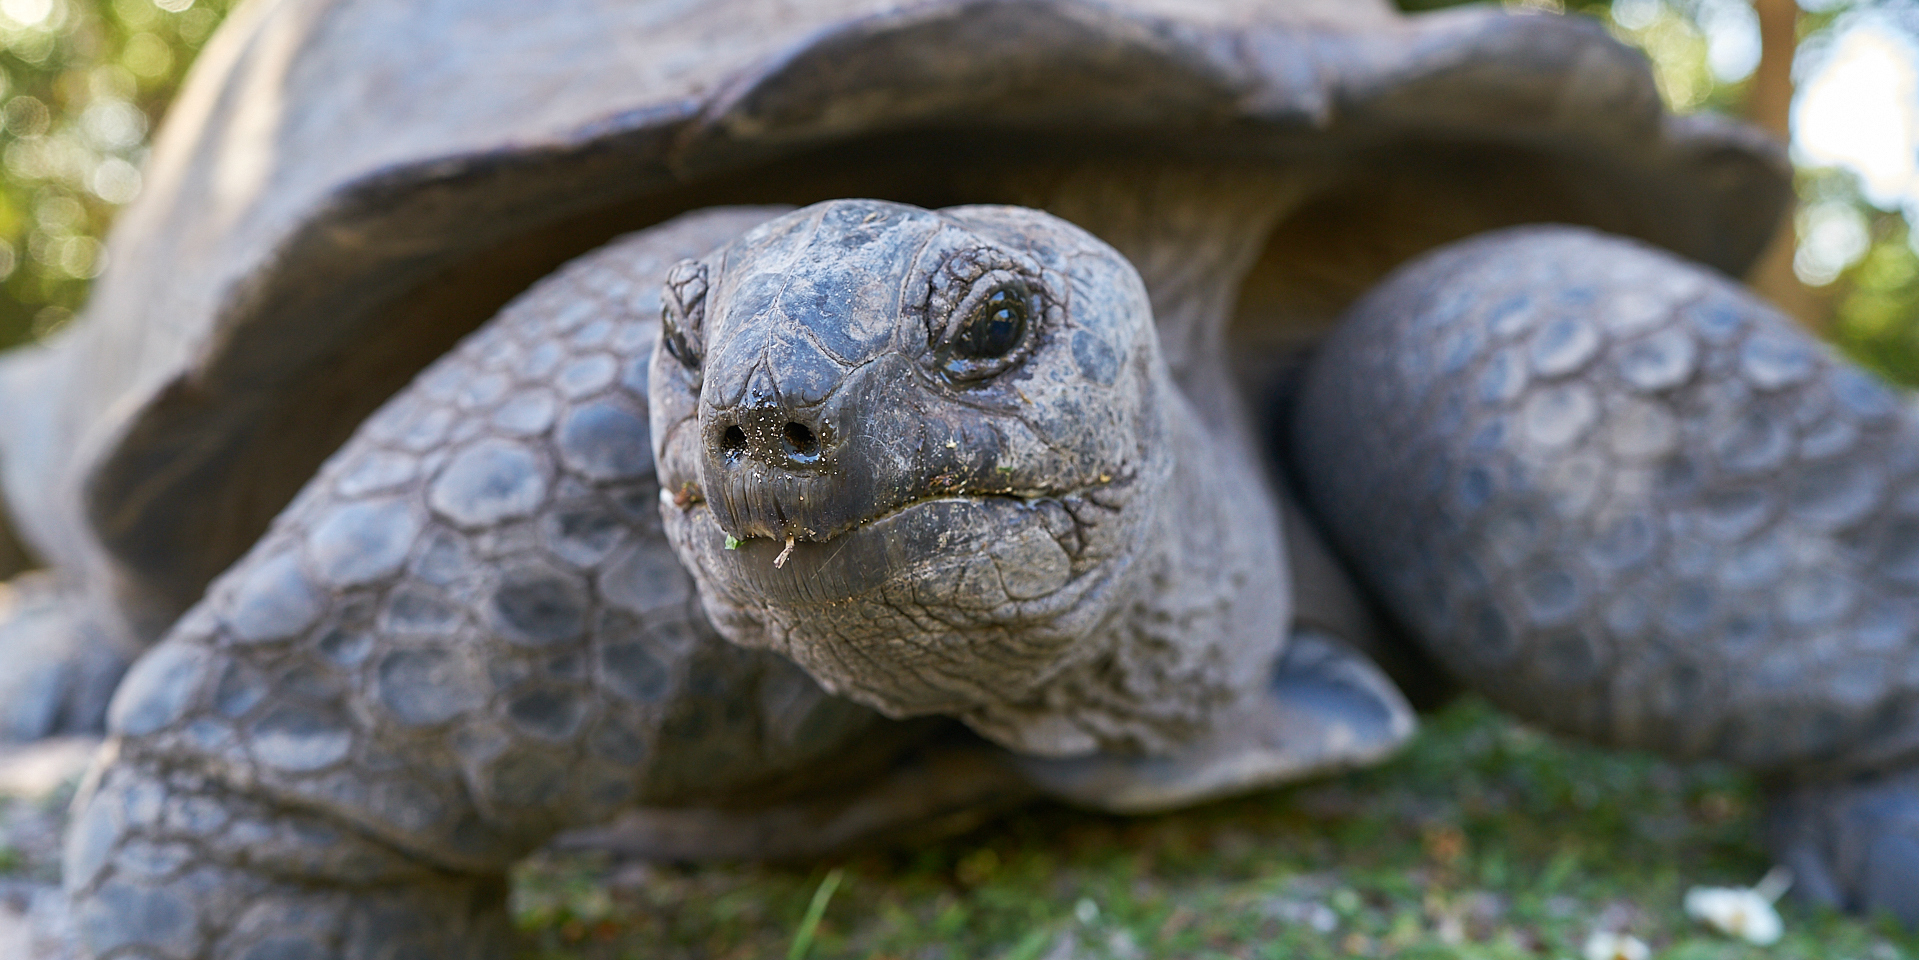 A Seychelles giant tortoise sticks out its long neck.